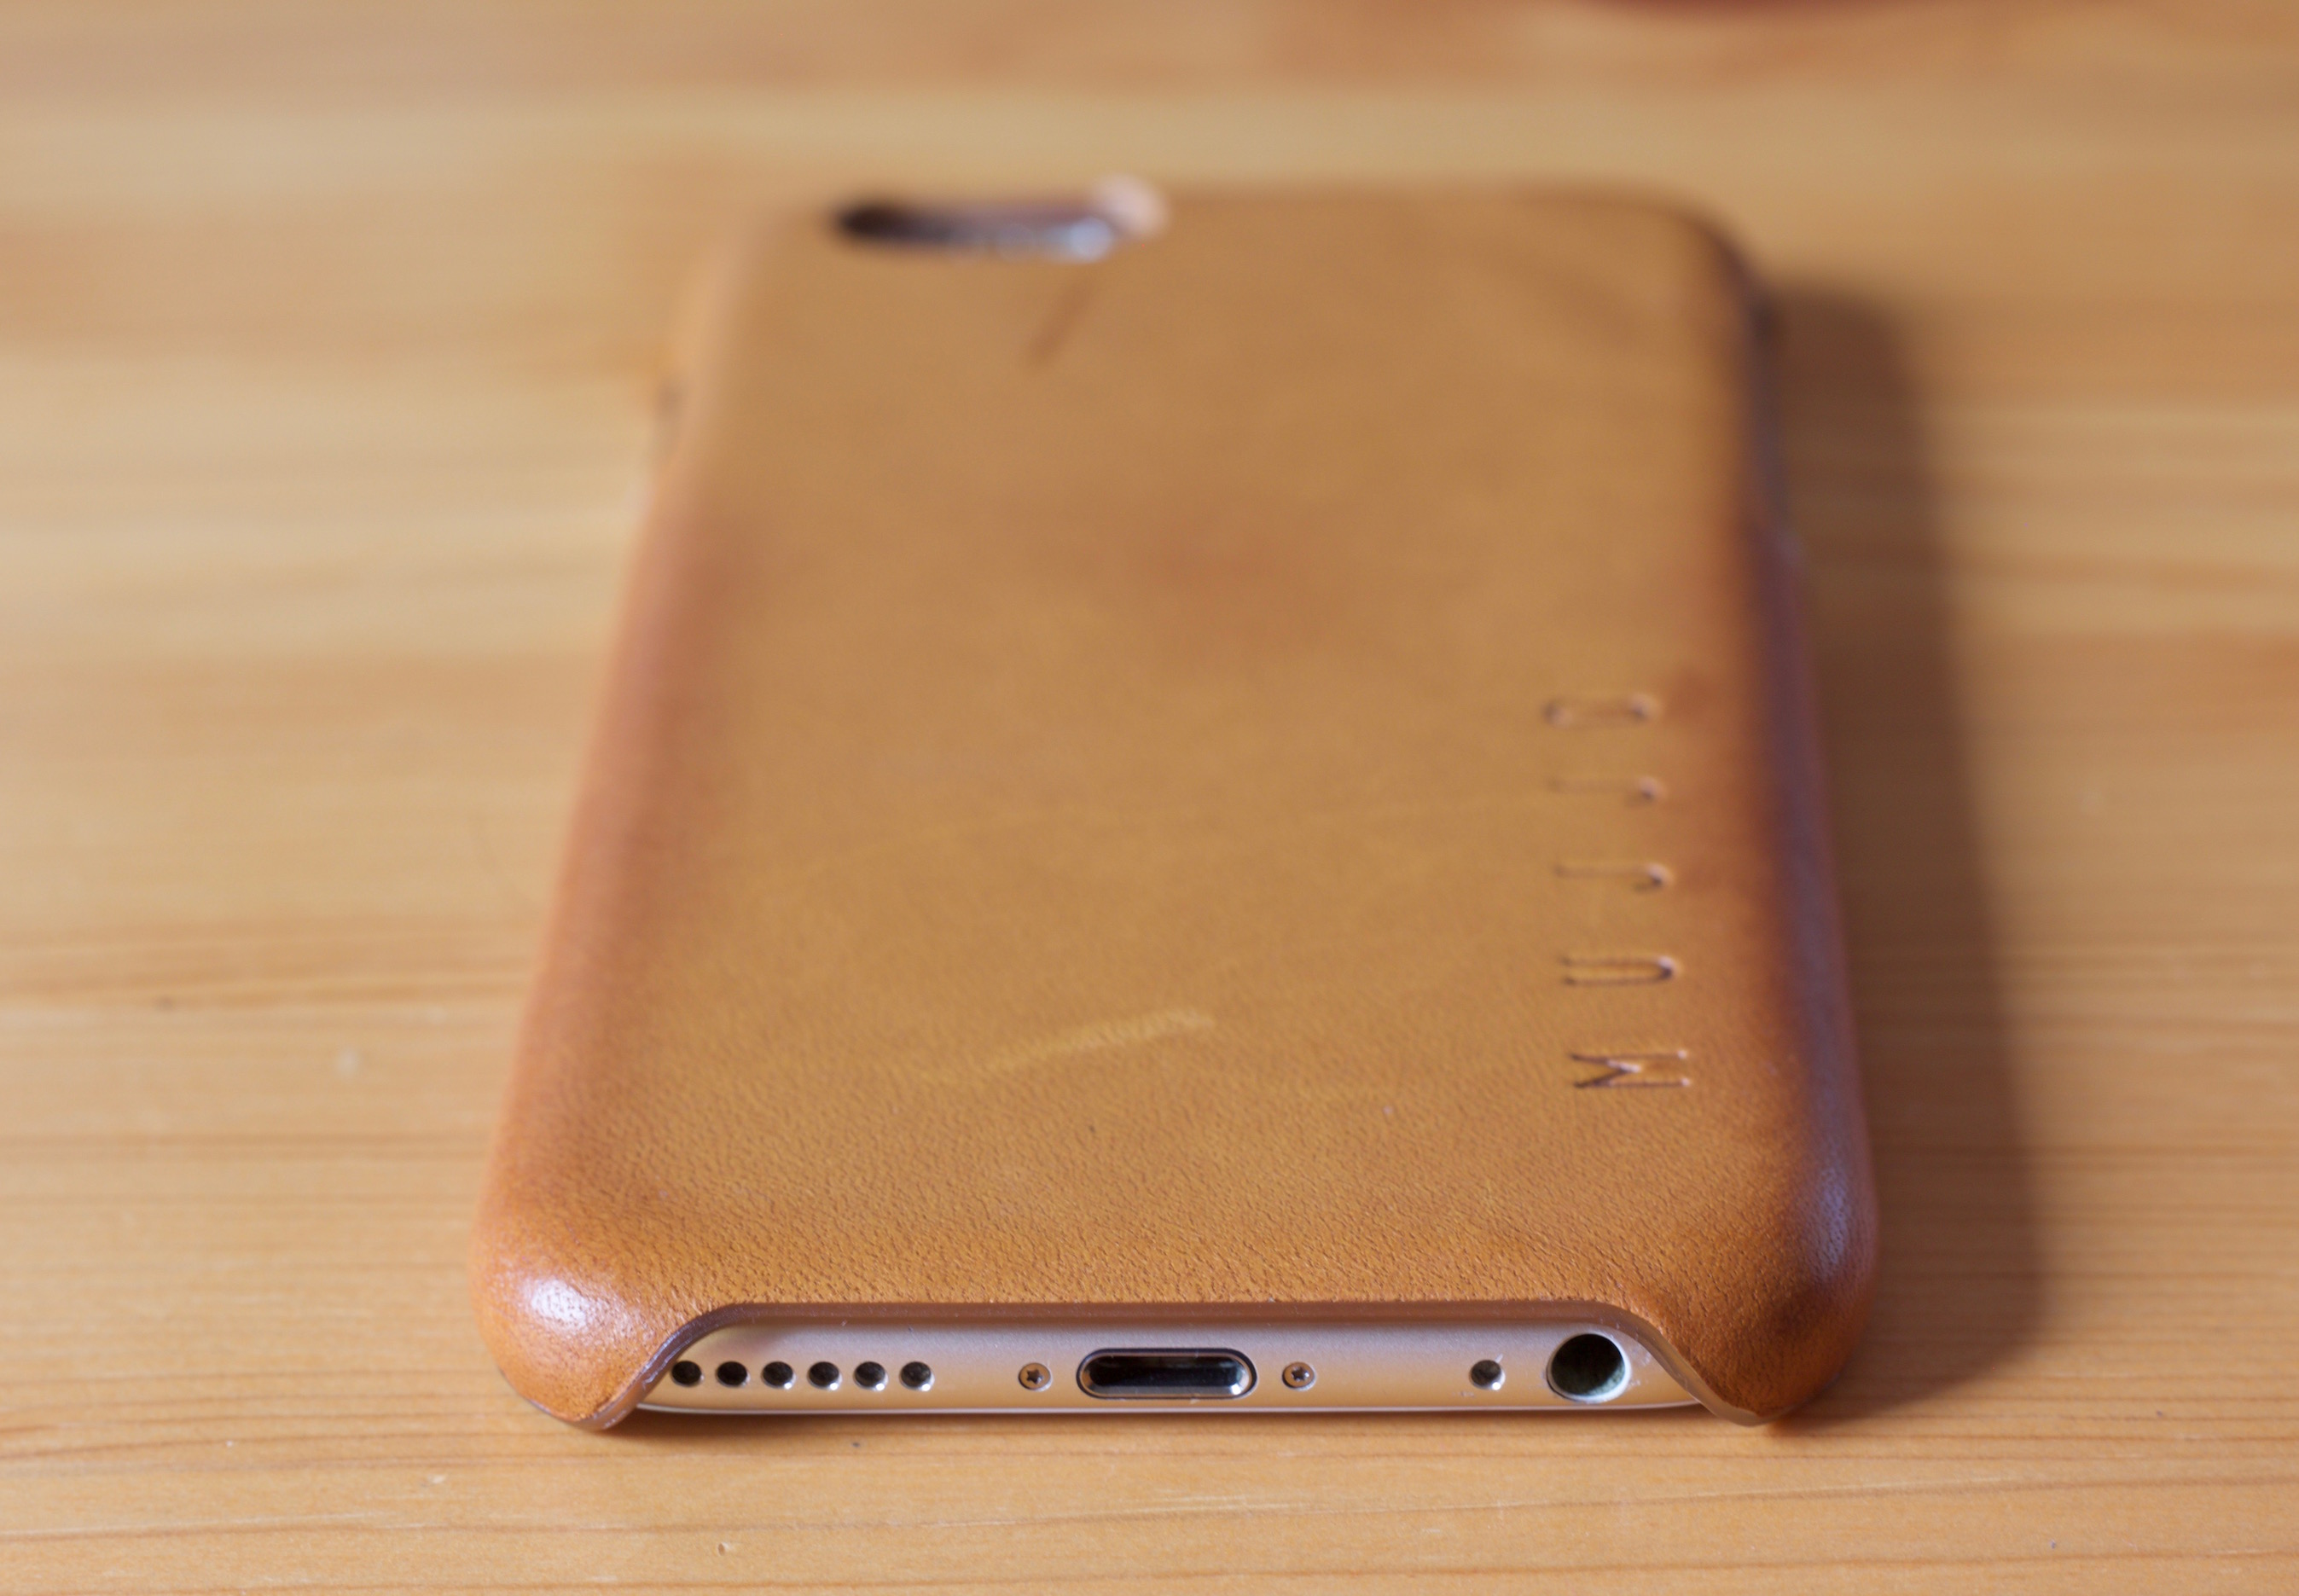 wholesale dealer 7fe67 328b8 Review: Mujjo Leather Case for iPhone 6 & 6s - 9to5Mac